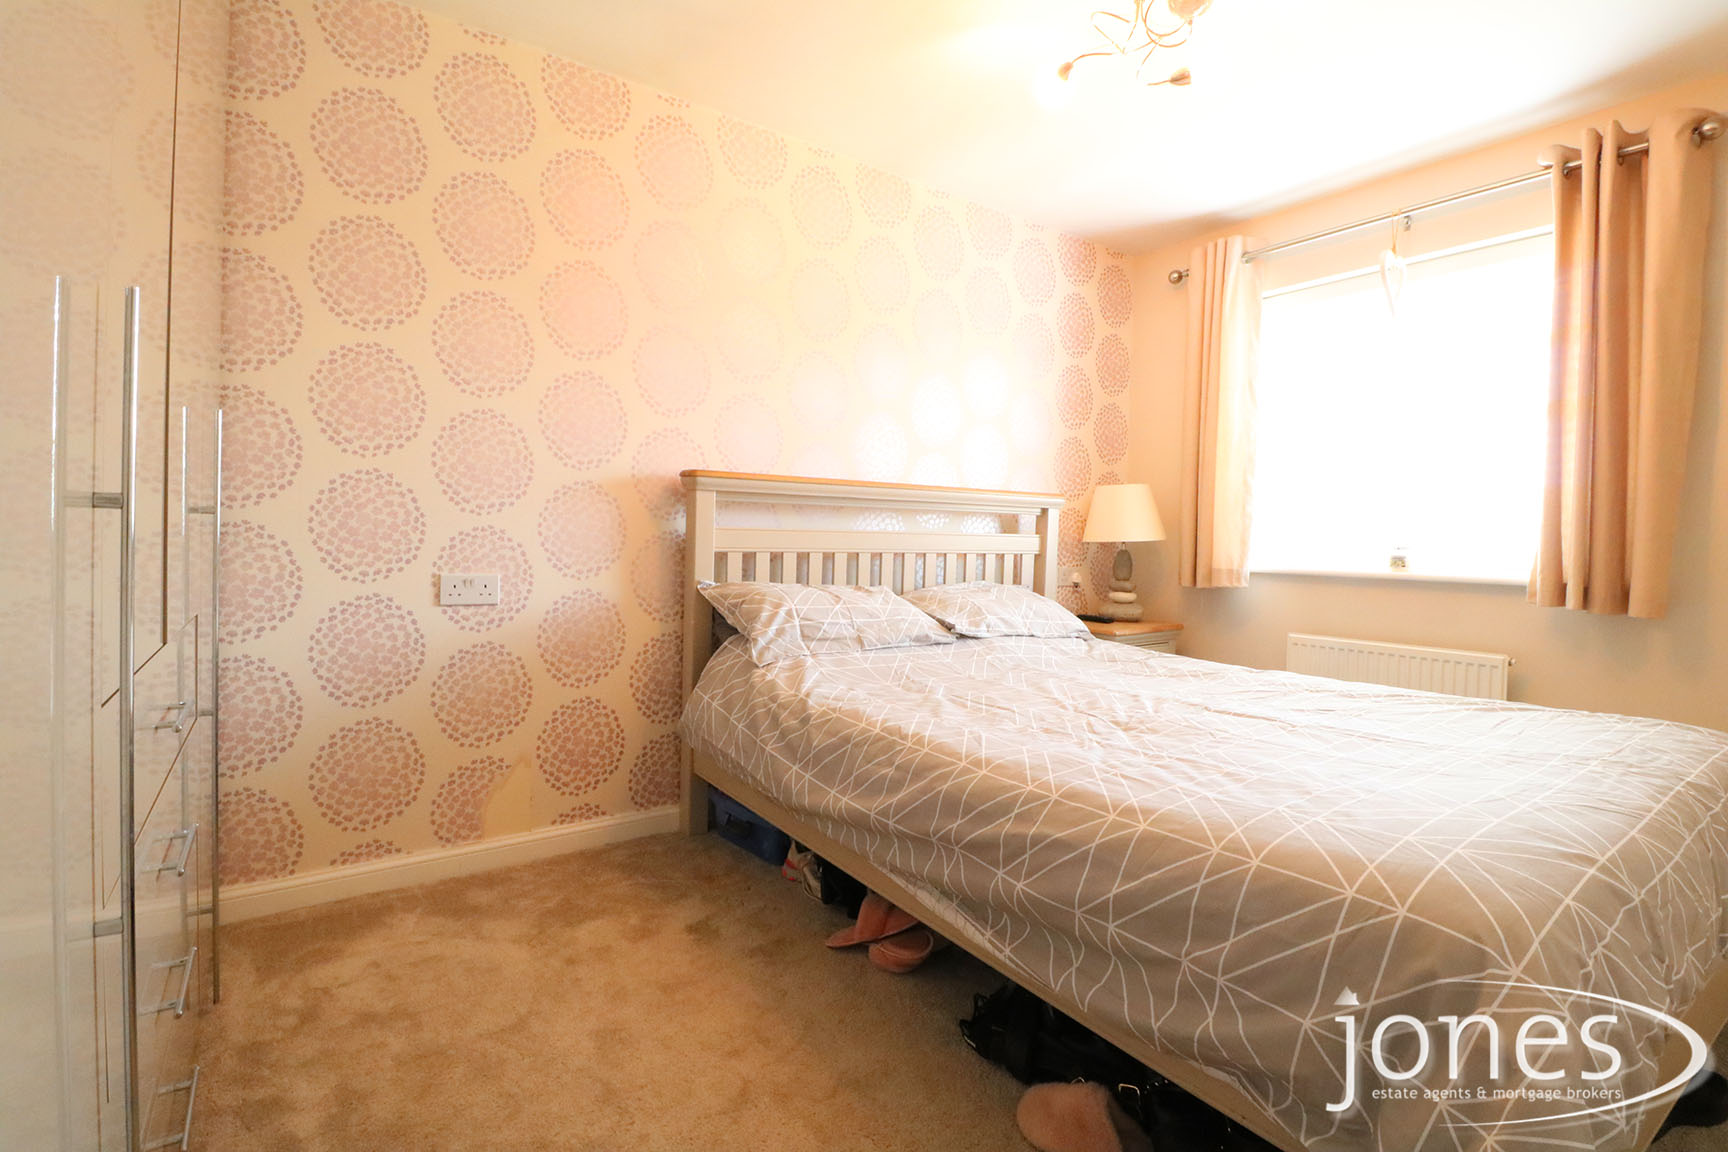 Home for Sale Let - Photo 07 Aristotle Drive, Stockton on Tees,  TS19 8GH